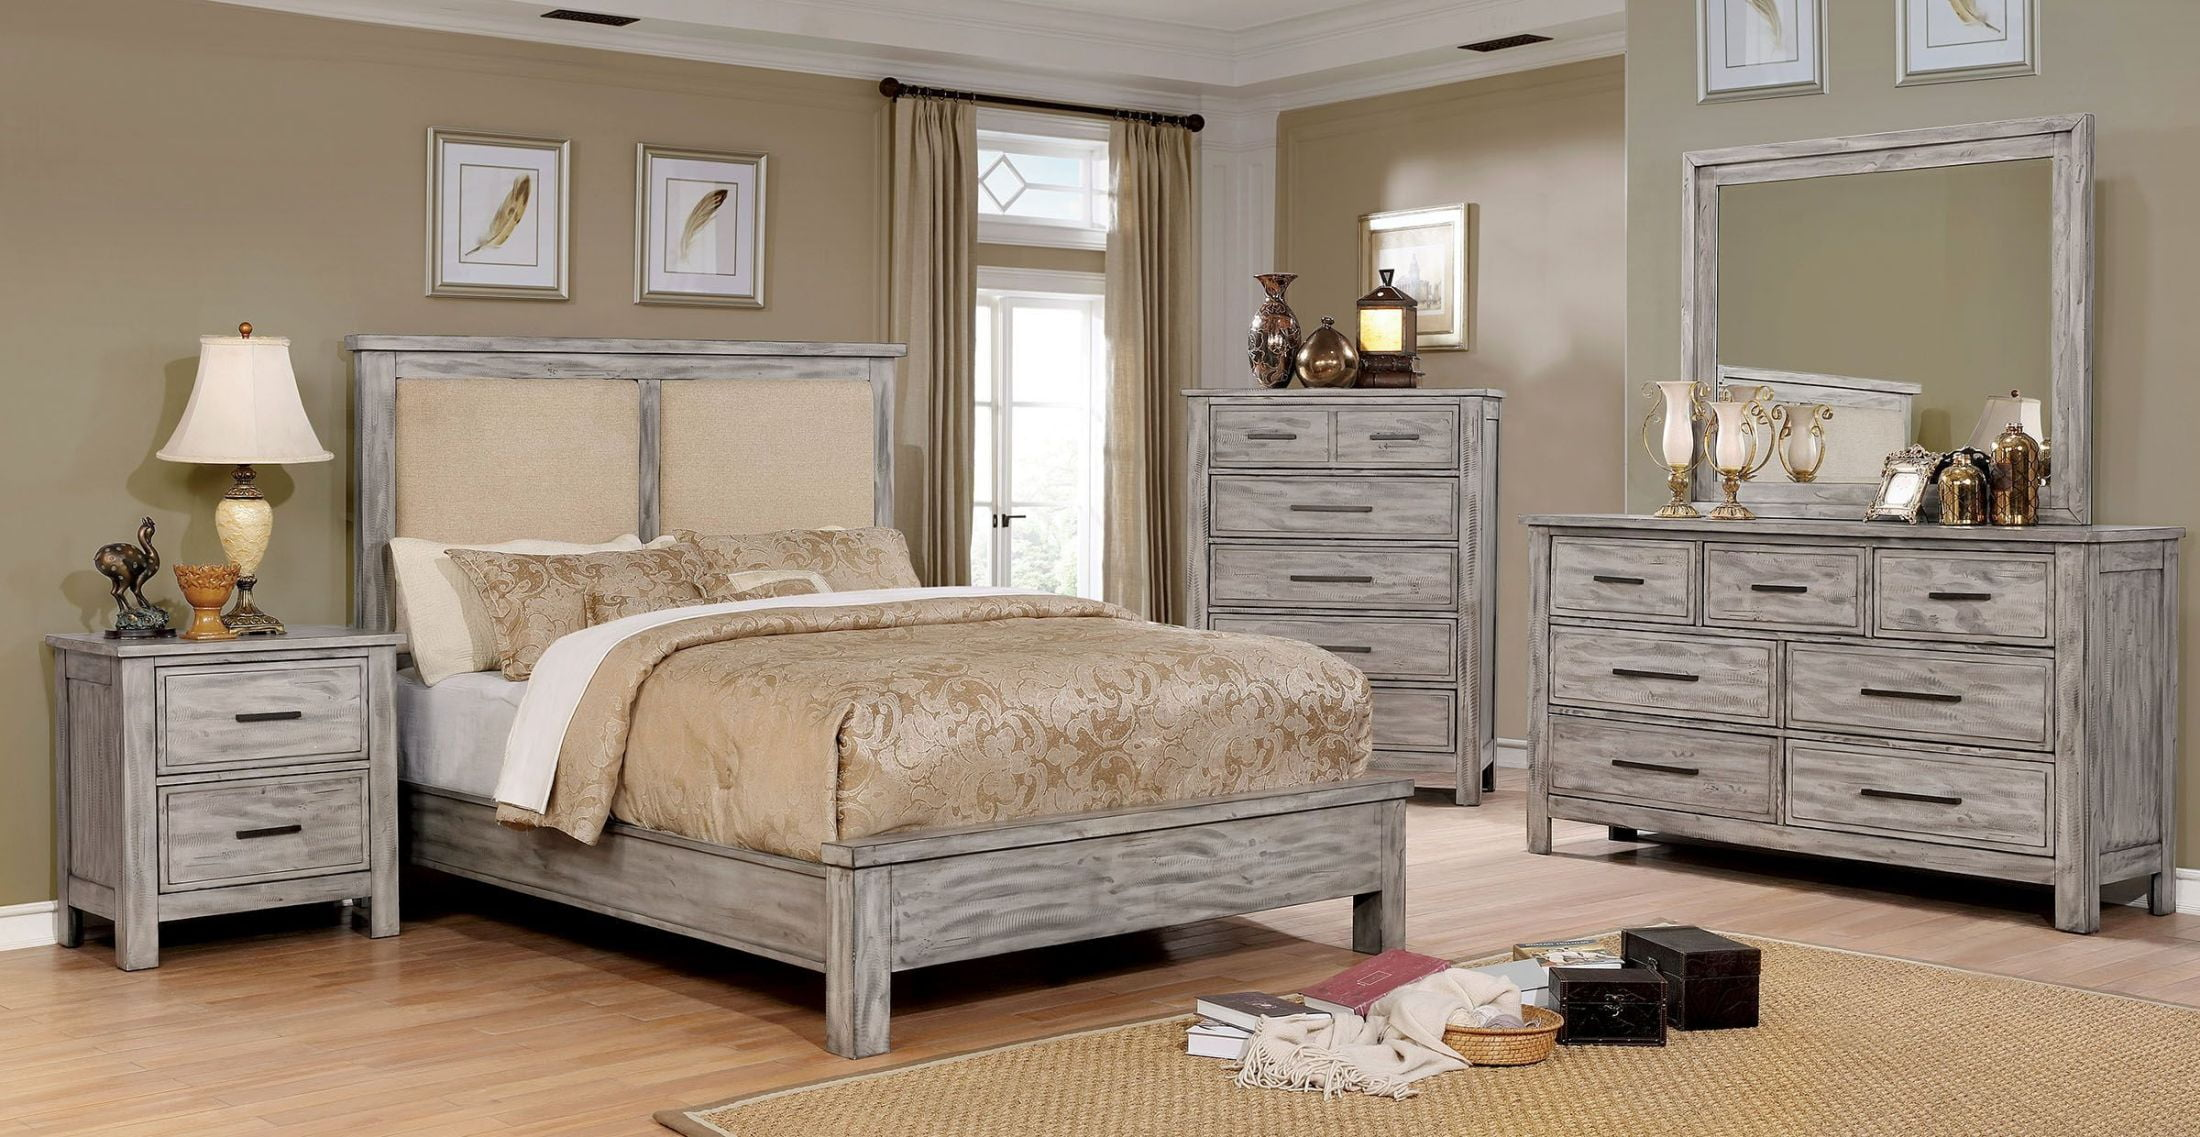 Grey Vintage Bedroom: Furniture Of America Canopus Antique Gray Upholstered